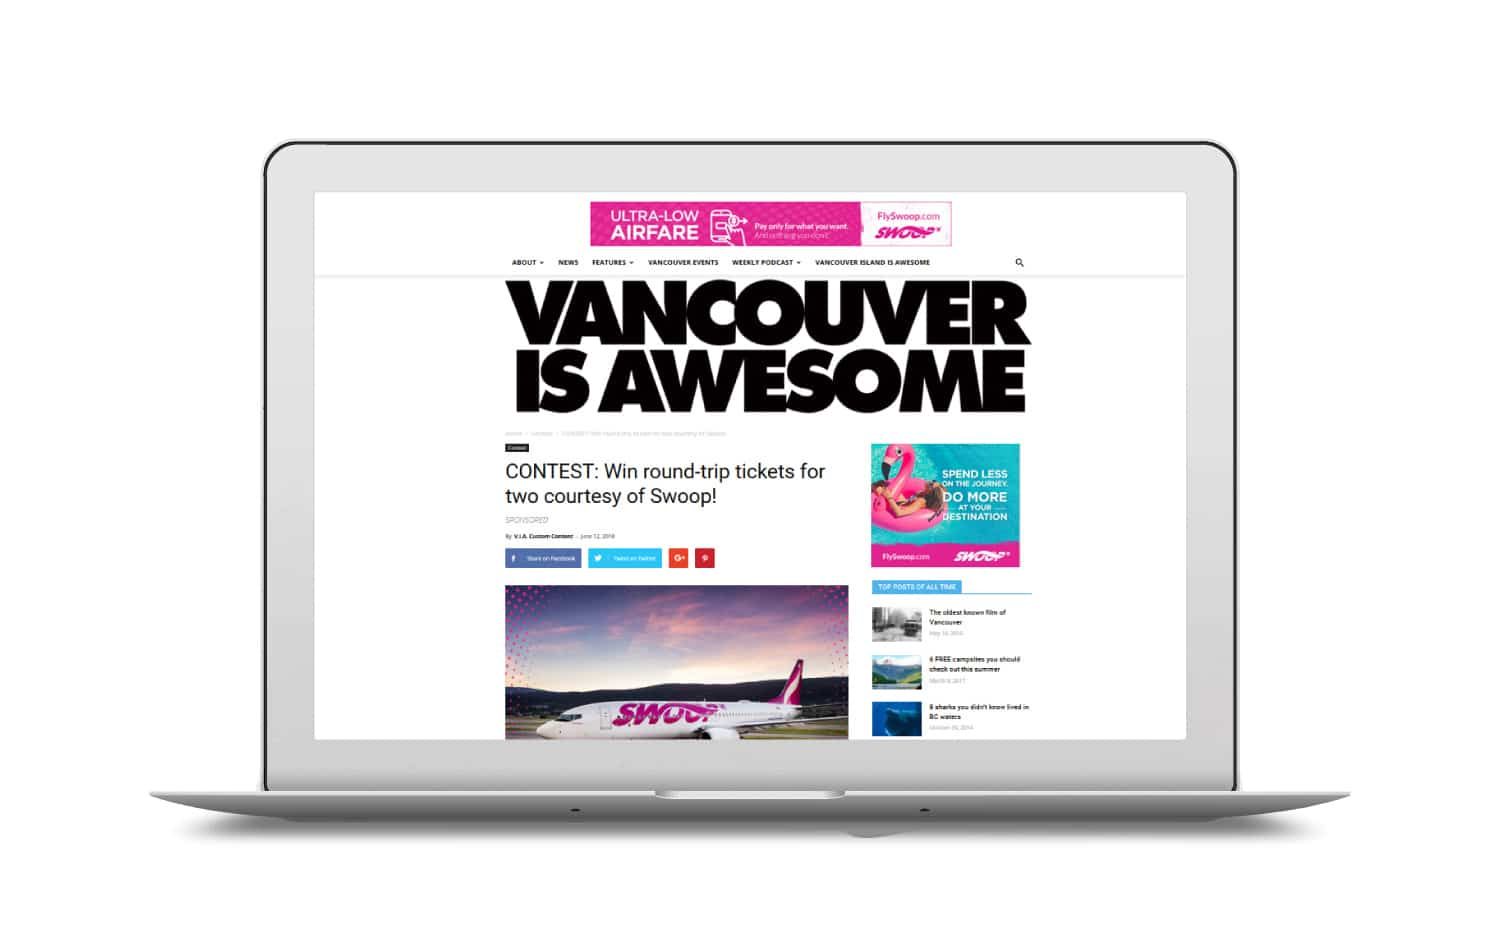 Vancouver is Awesome Sponsored Contest